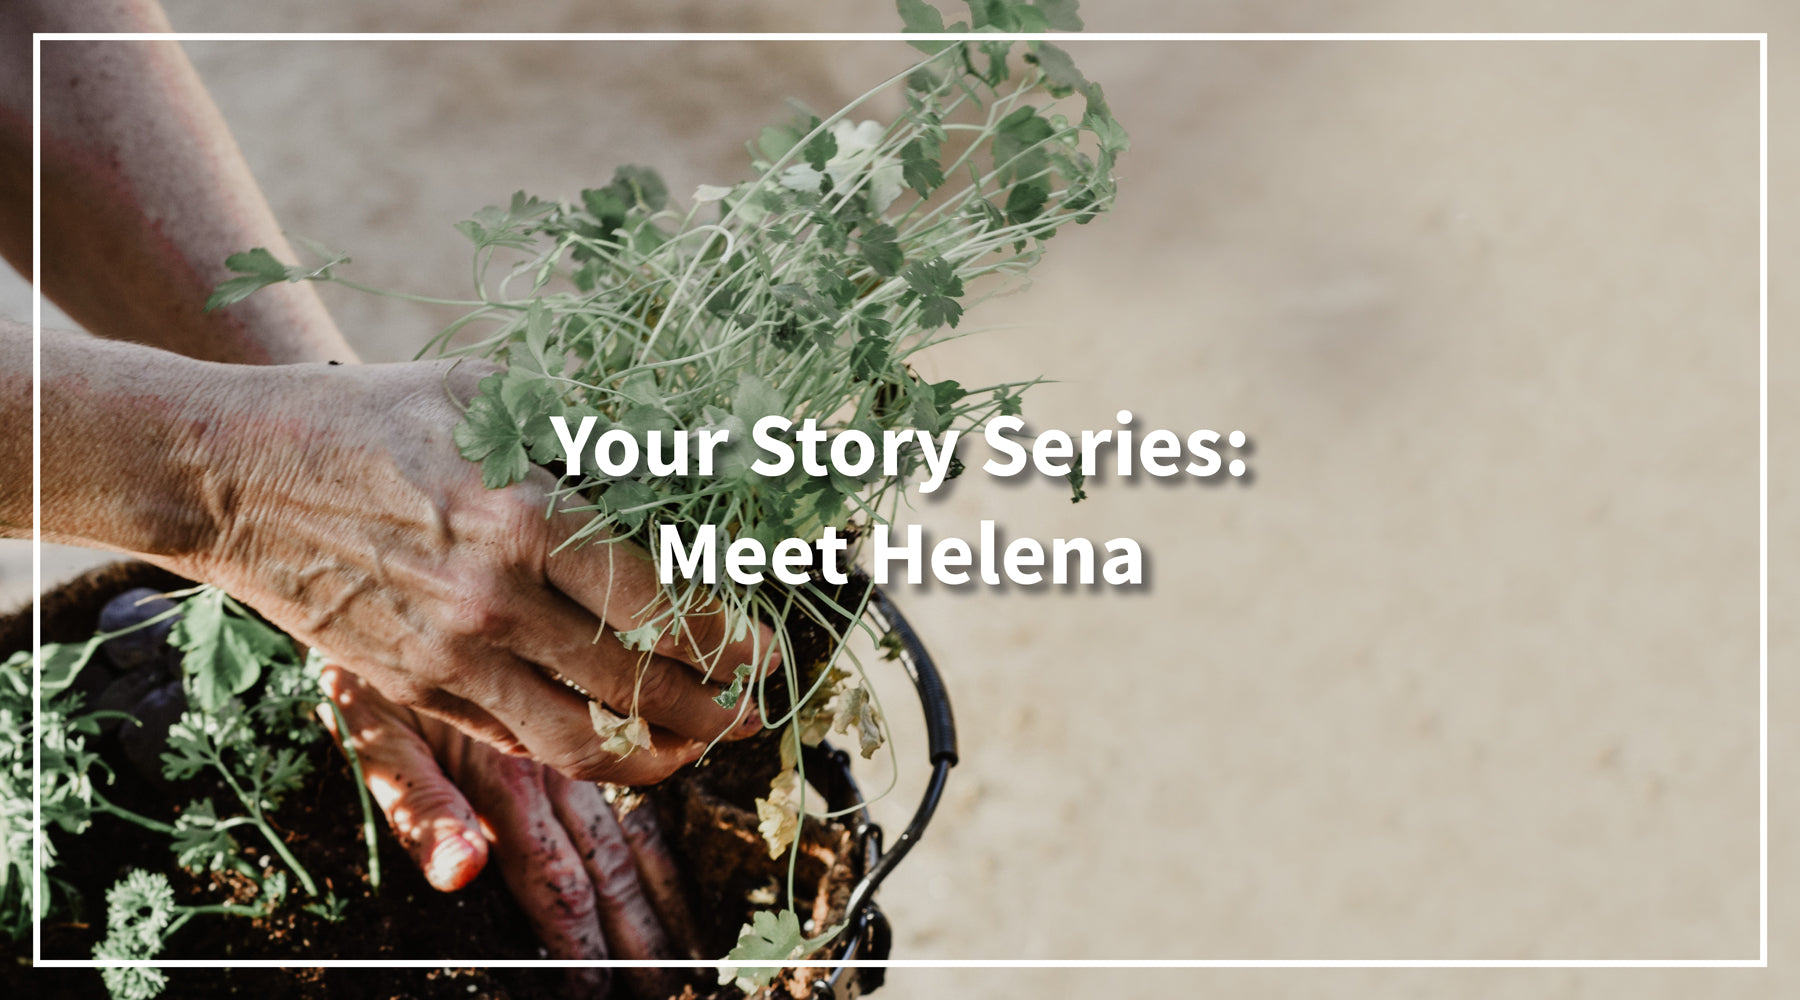 Solbari blog: Your Story Series: Meet Helena